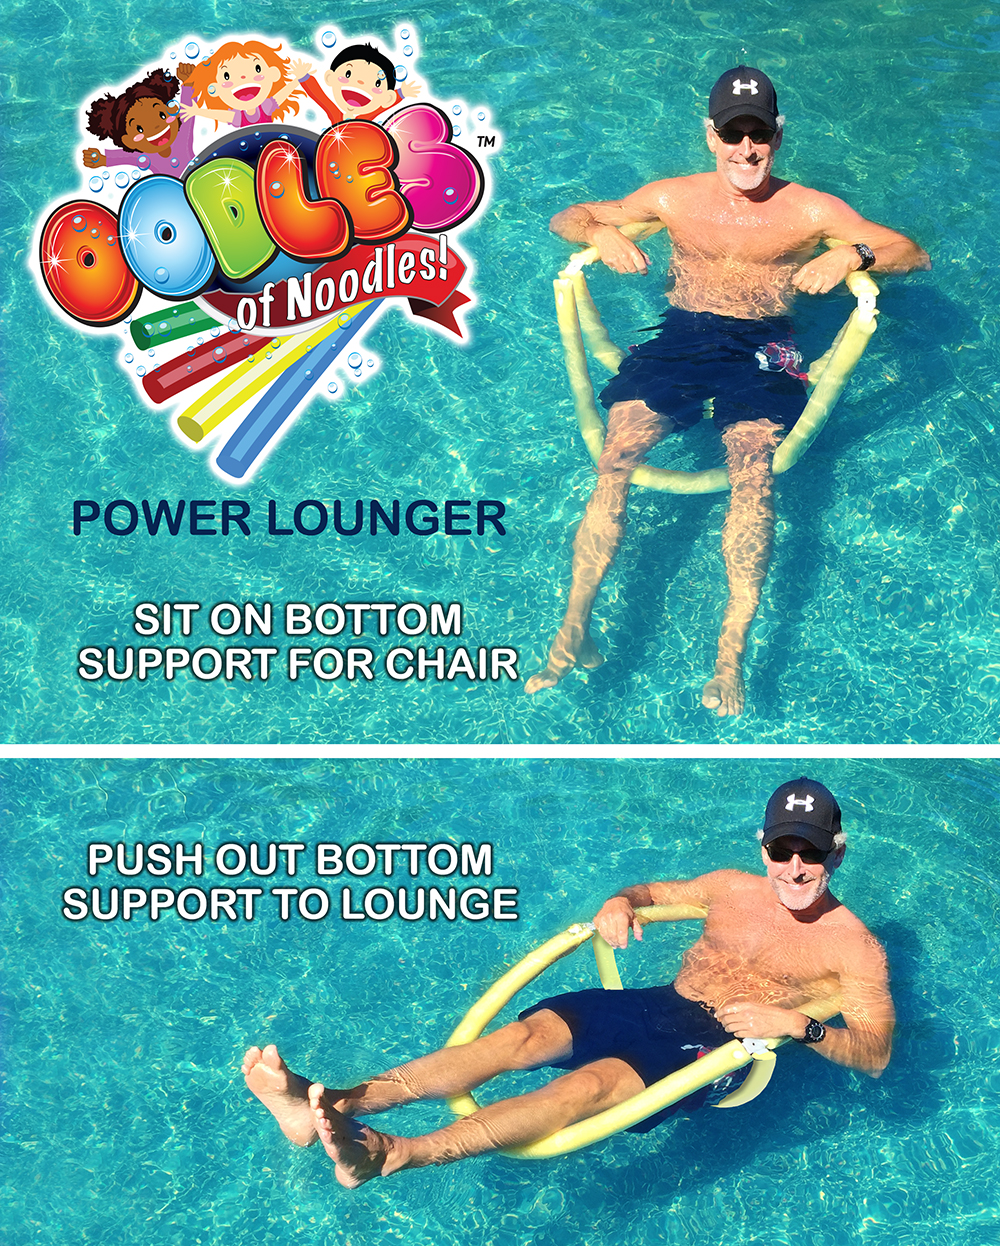 ... Picture 5 of 6  sc 1 st  eBay & Power Lounger Floating Pool Noodle Water Chair Comfortable and ...